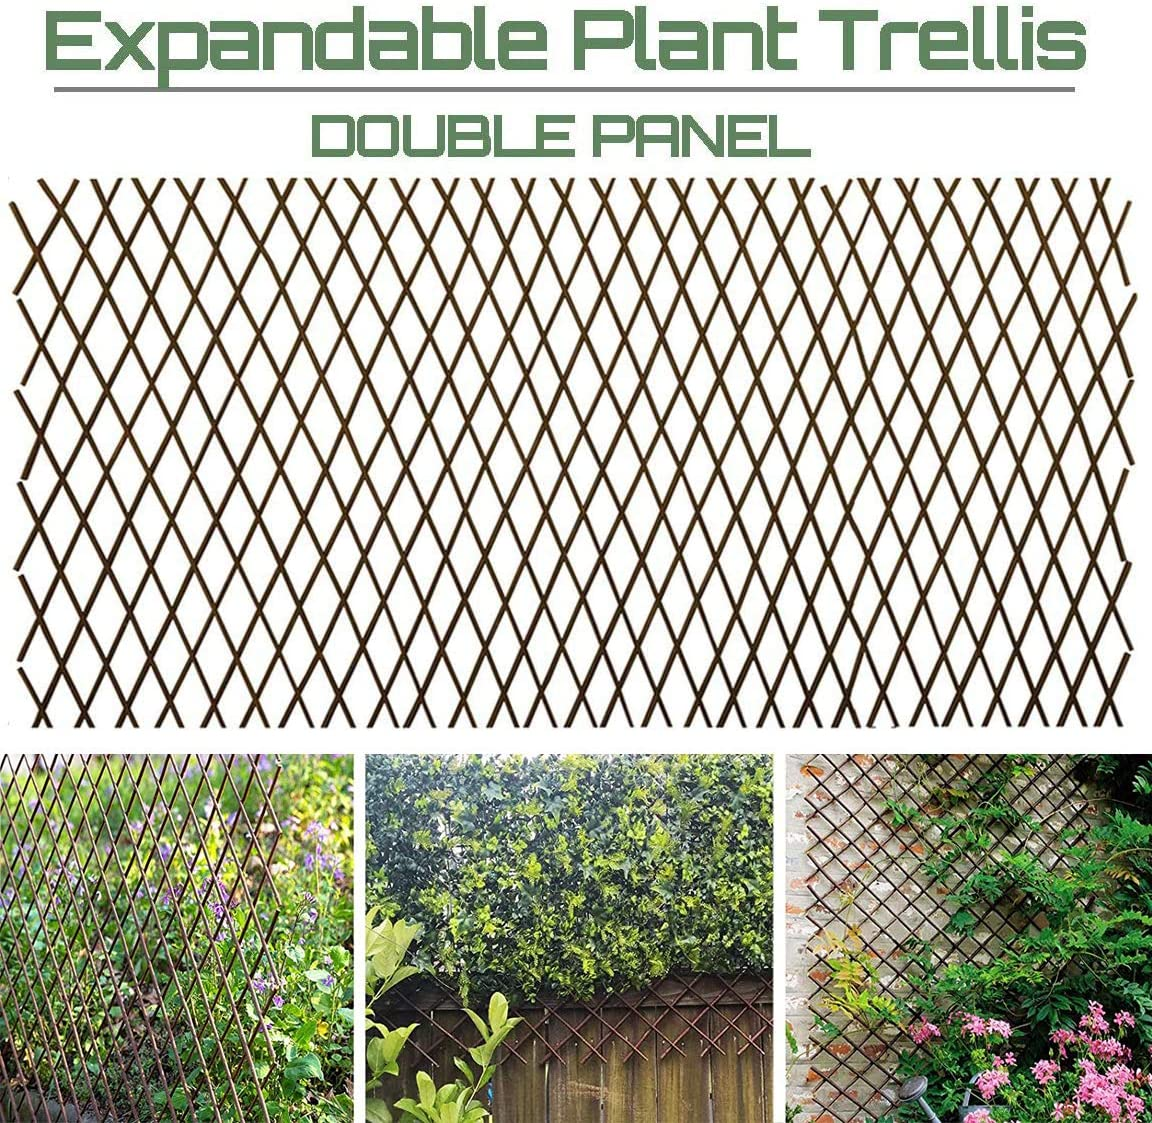 Sumery Nature Willow Trellis Expandable Plant Support Plant Climbing Lattices Trellis Willow Expandable Trellis Fence for Climbing Plants Support 36x92 Inch,Double Panel (2, Willow Wicker Fence)